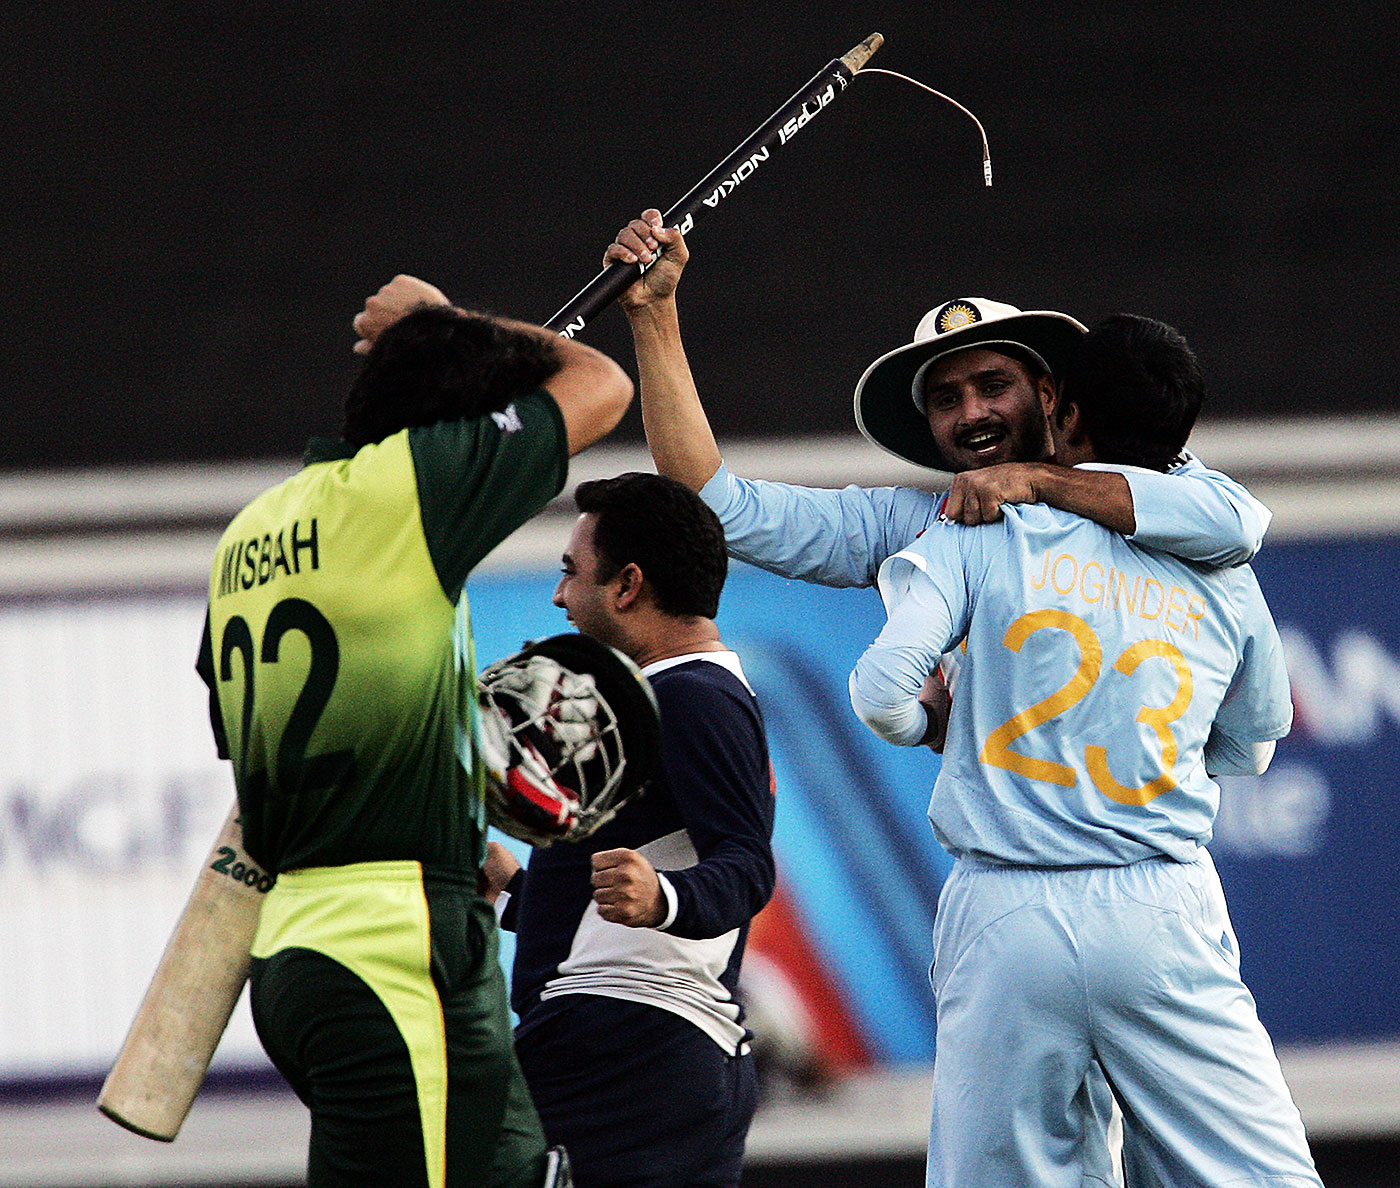 Singh emerged smiling at the end of the 2007 T20 World Cup final, though he got some stick from Misbah-ul-Haq when he resorted to bowling yorkers